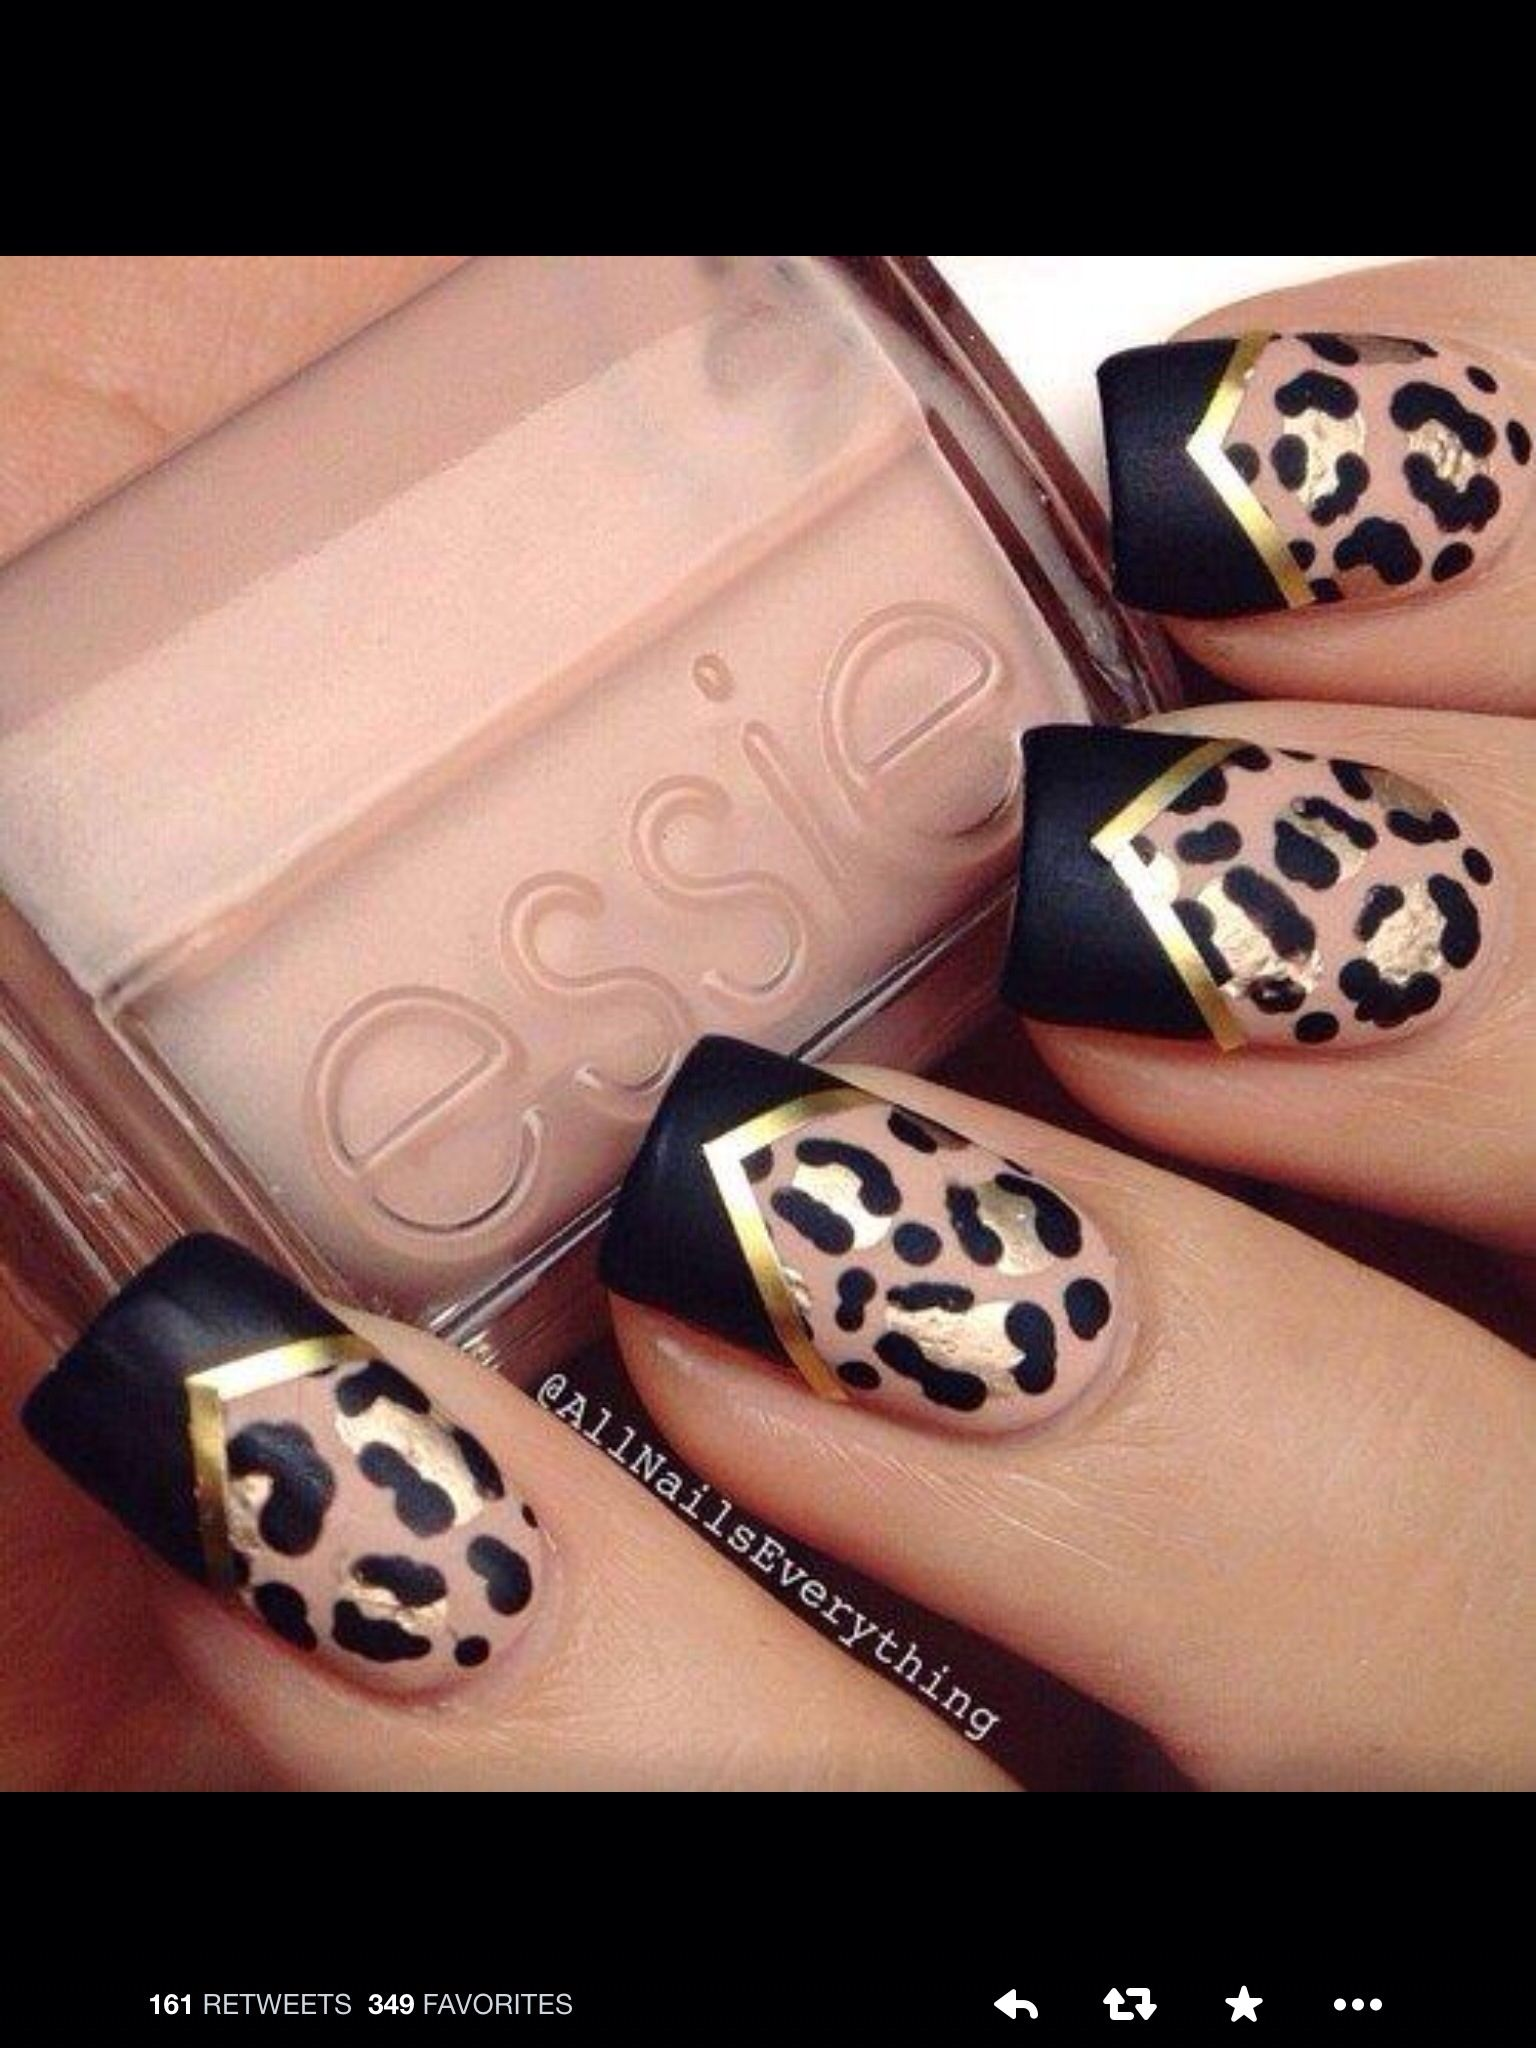 Cheetah Nail Designs, Gold Nail Designs, Leopard Print Nails, Cute Nail - Pin By Jeannine Ranni On Nails Pinterest Nail Designs, Nails And